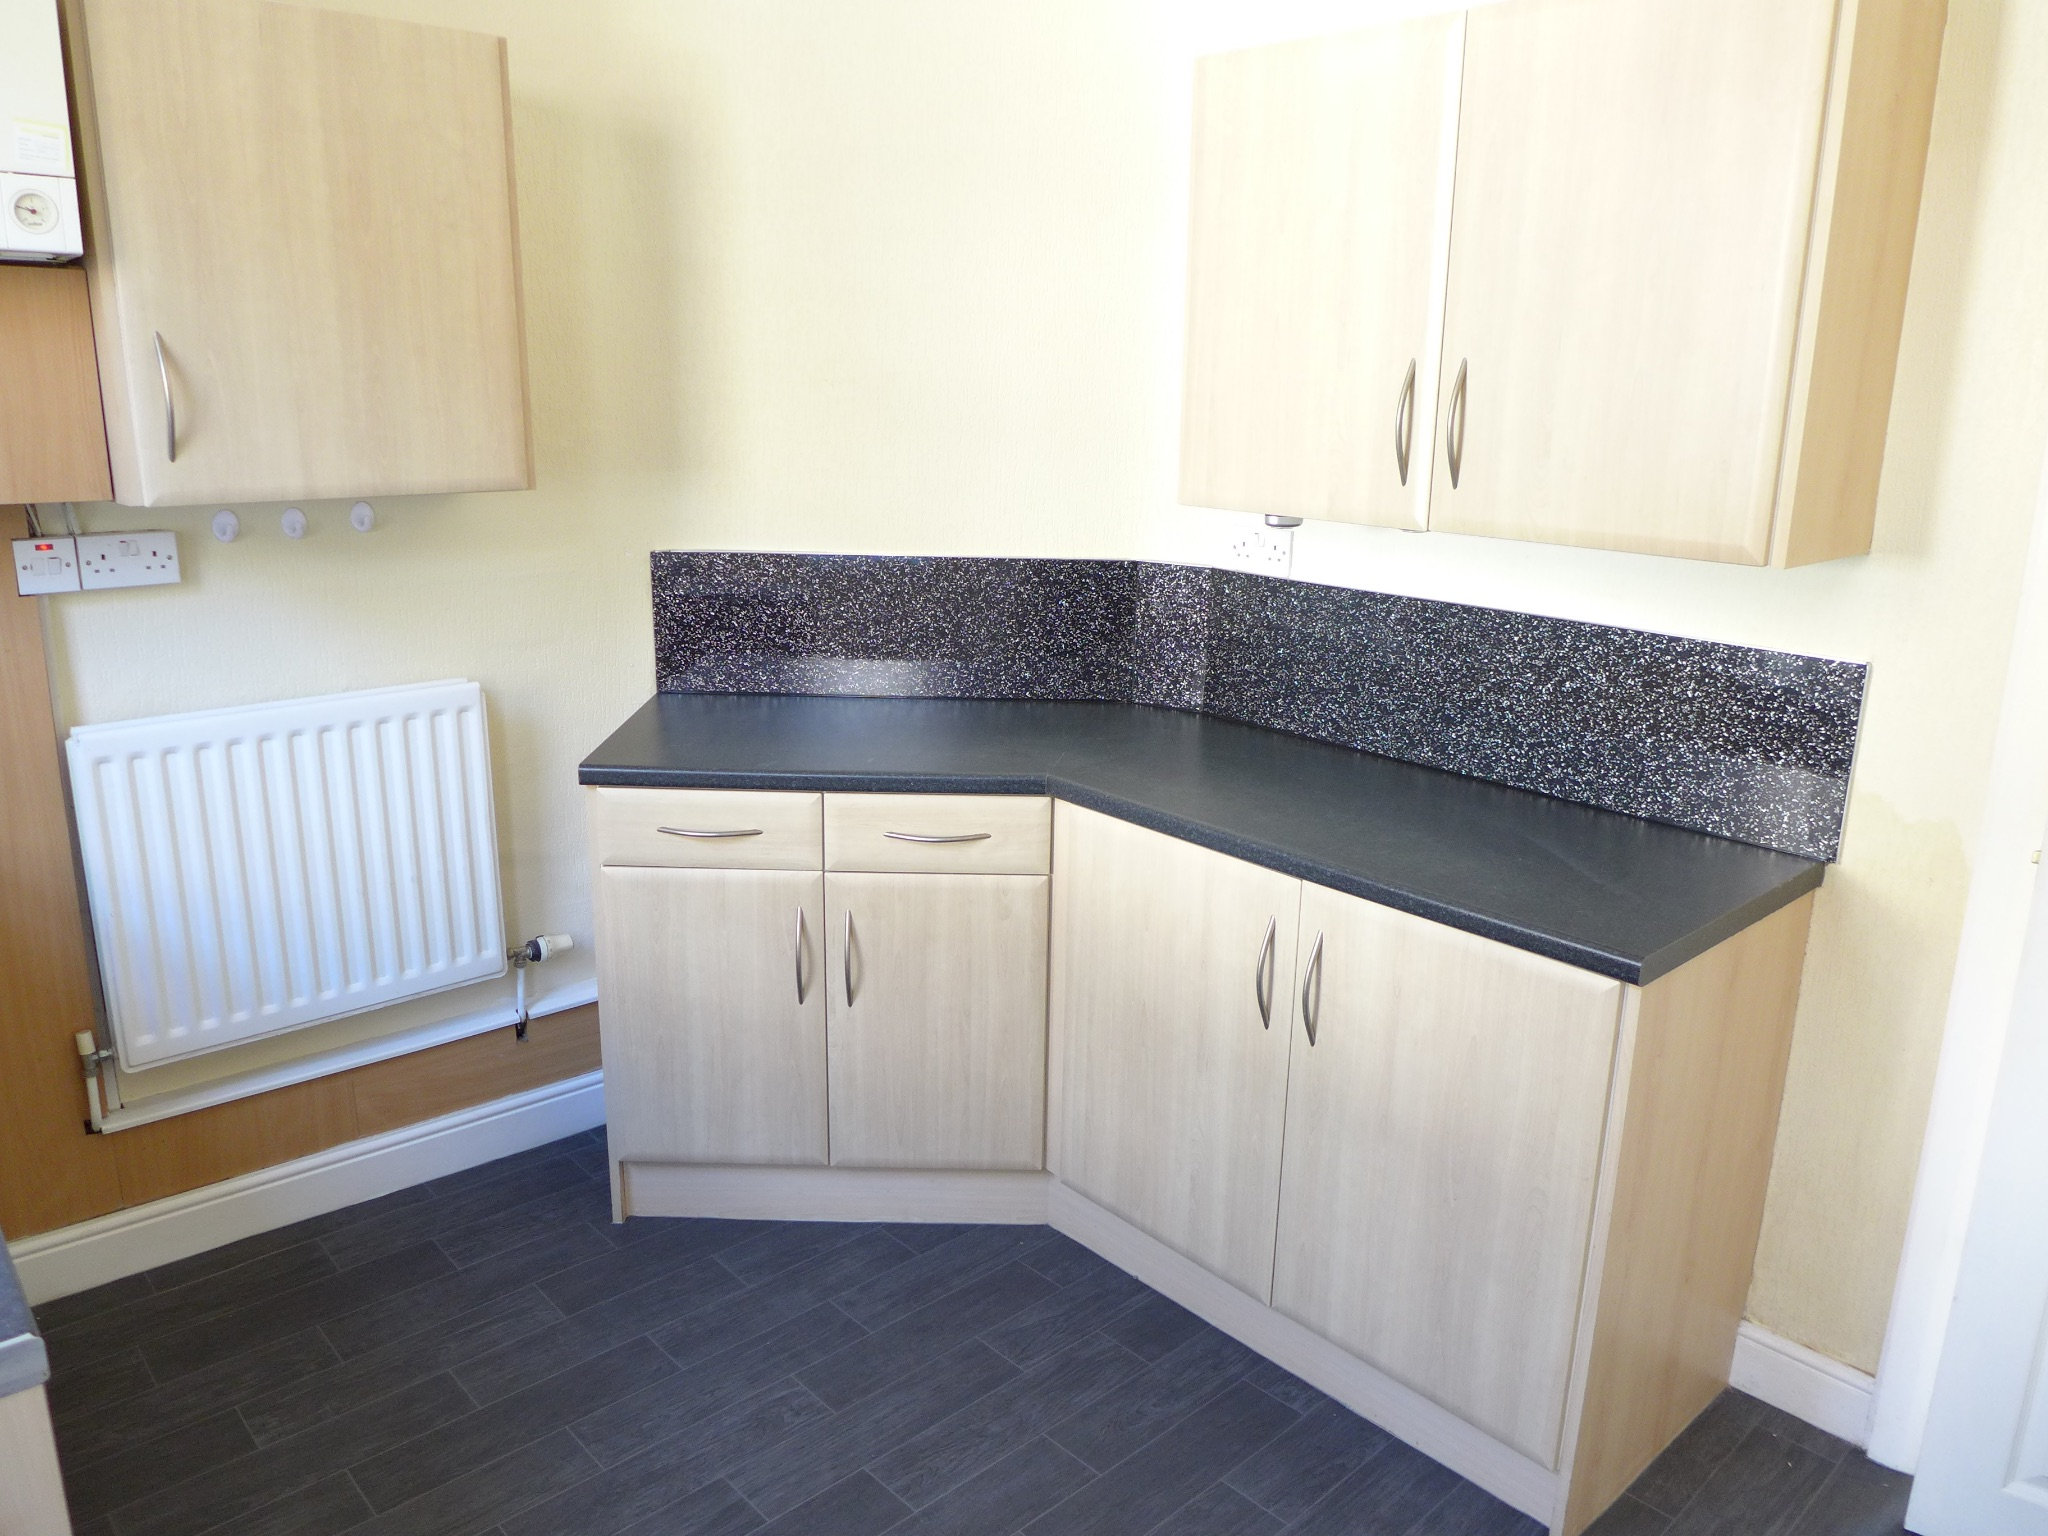 3 bedroom mid terraced house For Sale in Todmorden - Photograph 5.